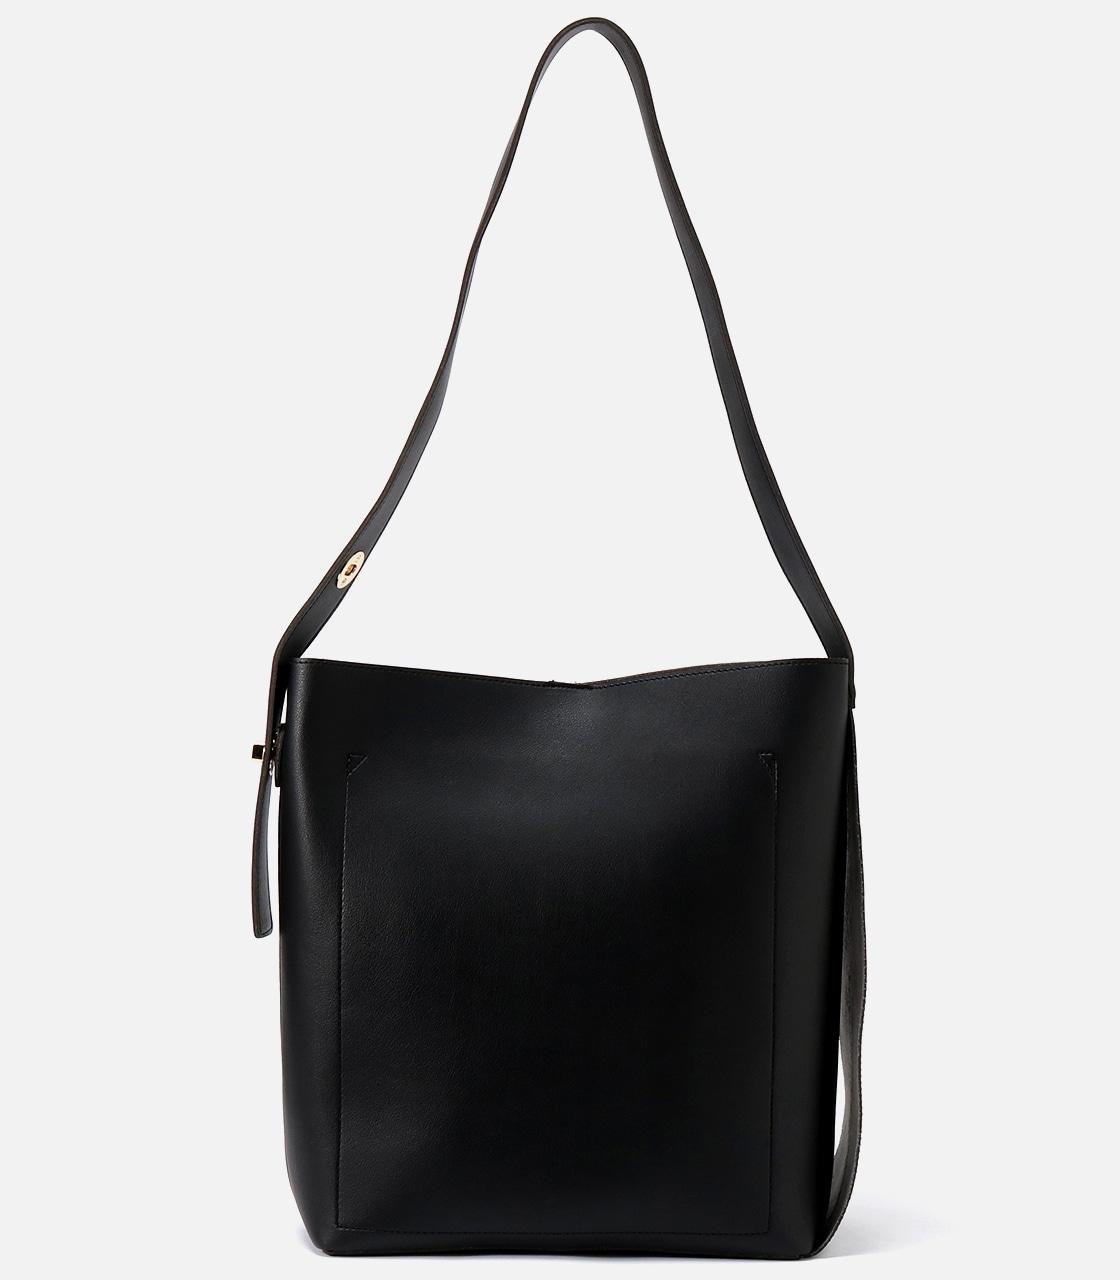 【AZUL BY MOUSSY】SQUARE TOTABAG 詳細画像 BLK 2